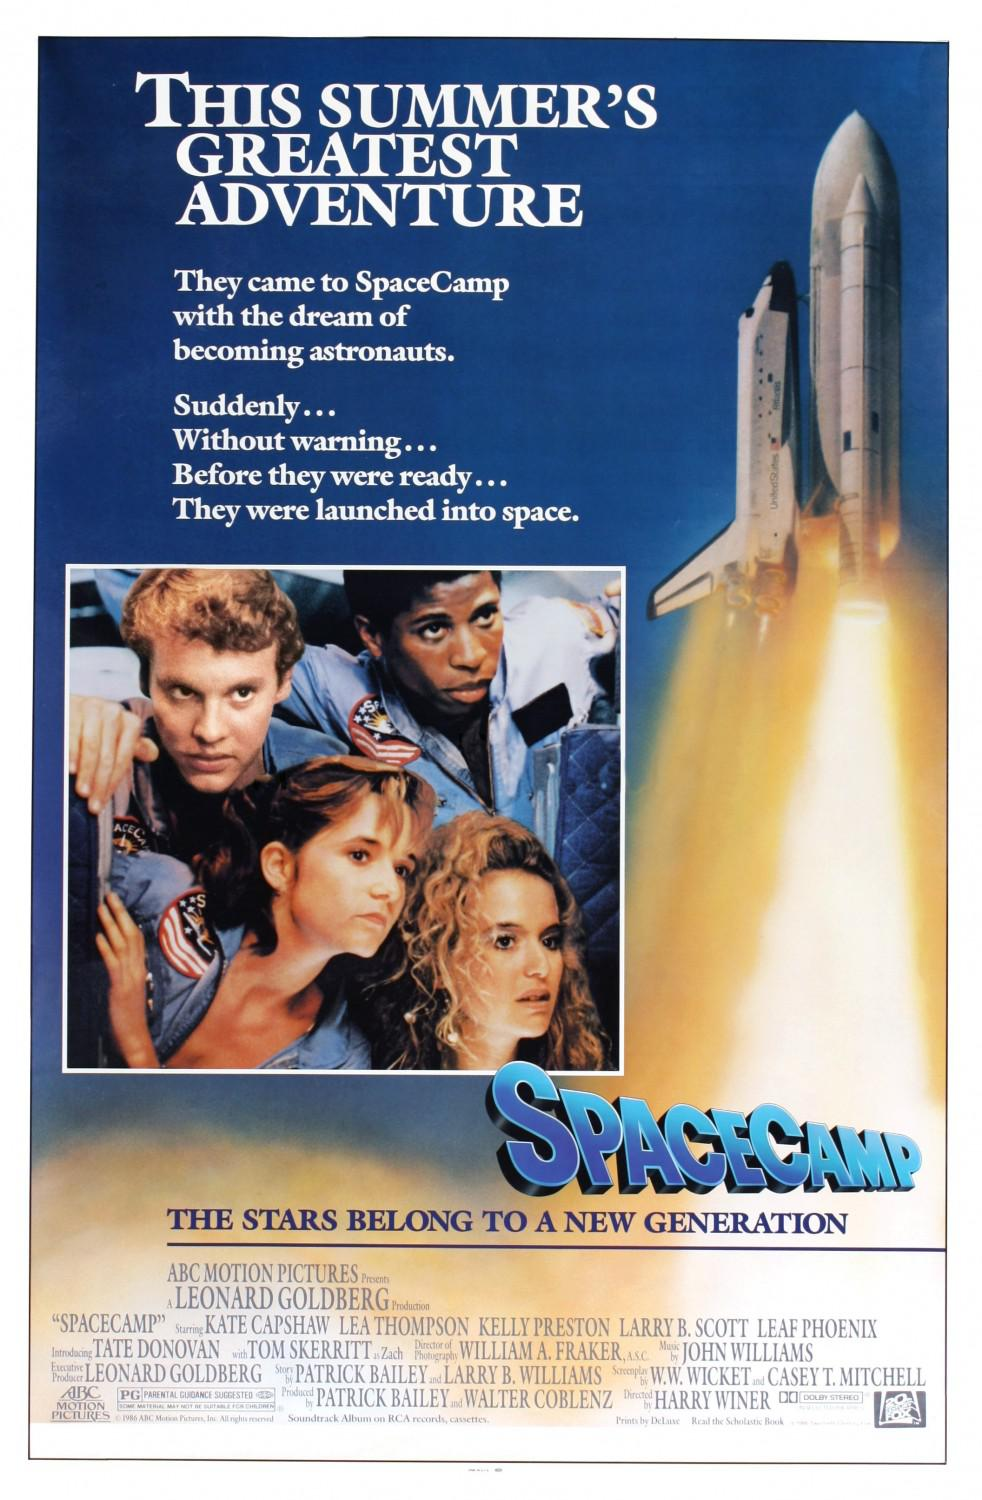 Spacecamp - This Summer's greatest Adventure. They came to SpaceCamp with the Dream of becoming Astronauts. Suddenly, without warning, before they were ready, they were launched into space. - Kate Capshaw - Lea Thompson - Kelly Preston - Larry B. Scott - Leaf Phoenix